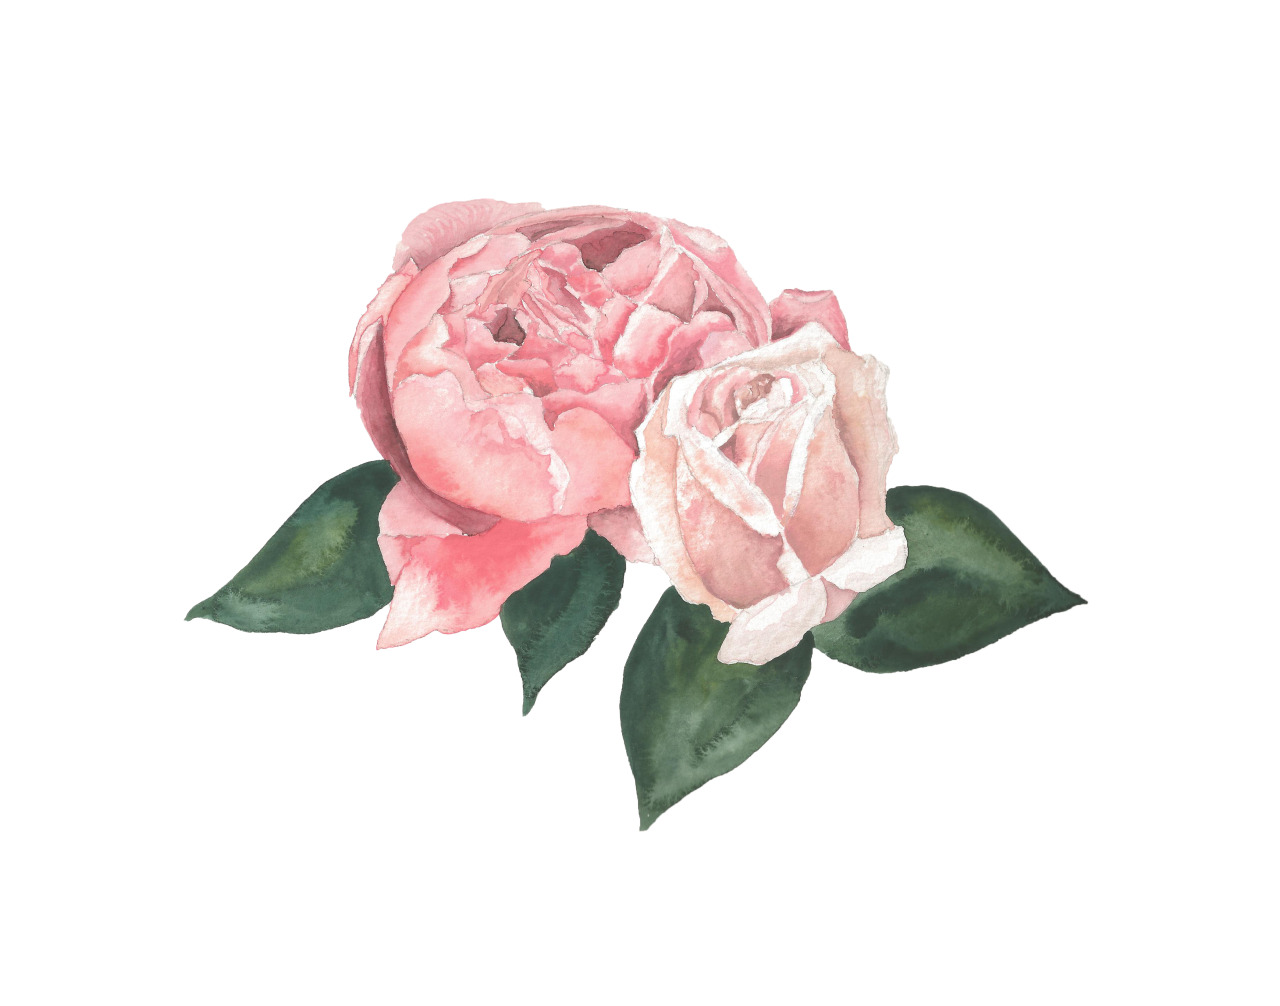 1280x1006 Image Result For Cute Flower Drawings Tumblr Cool Drawings